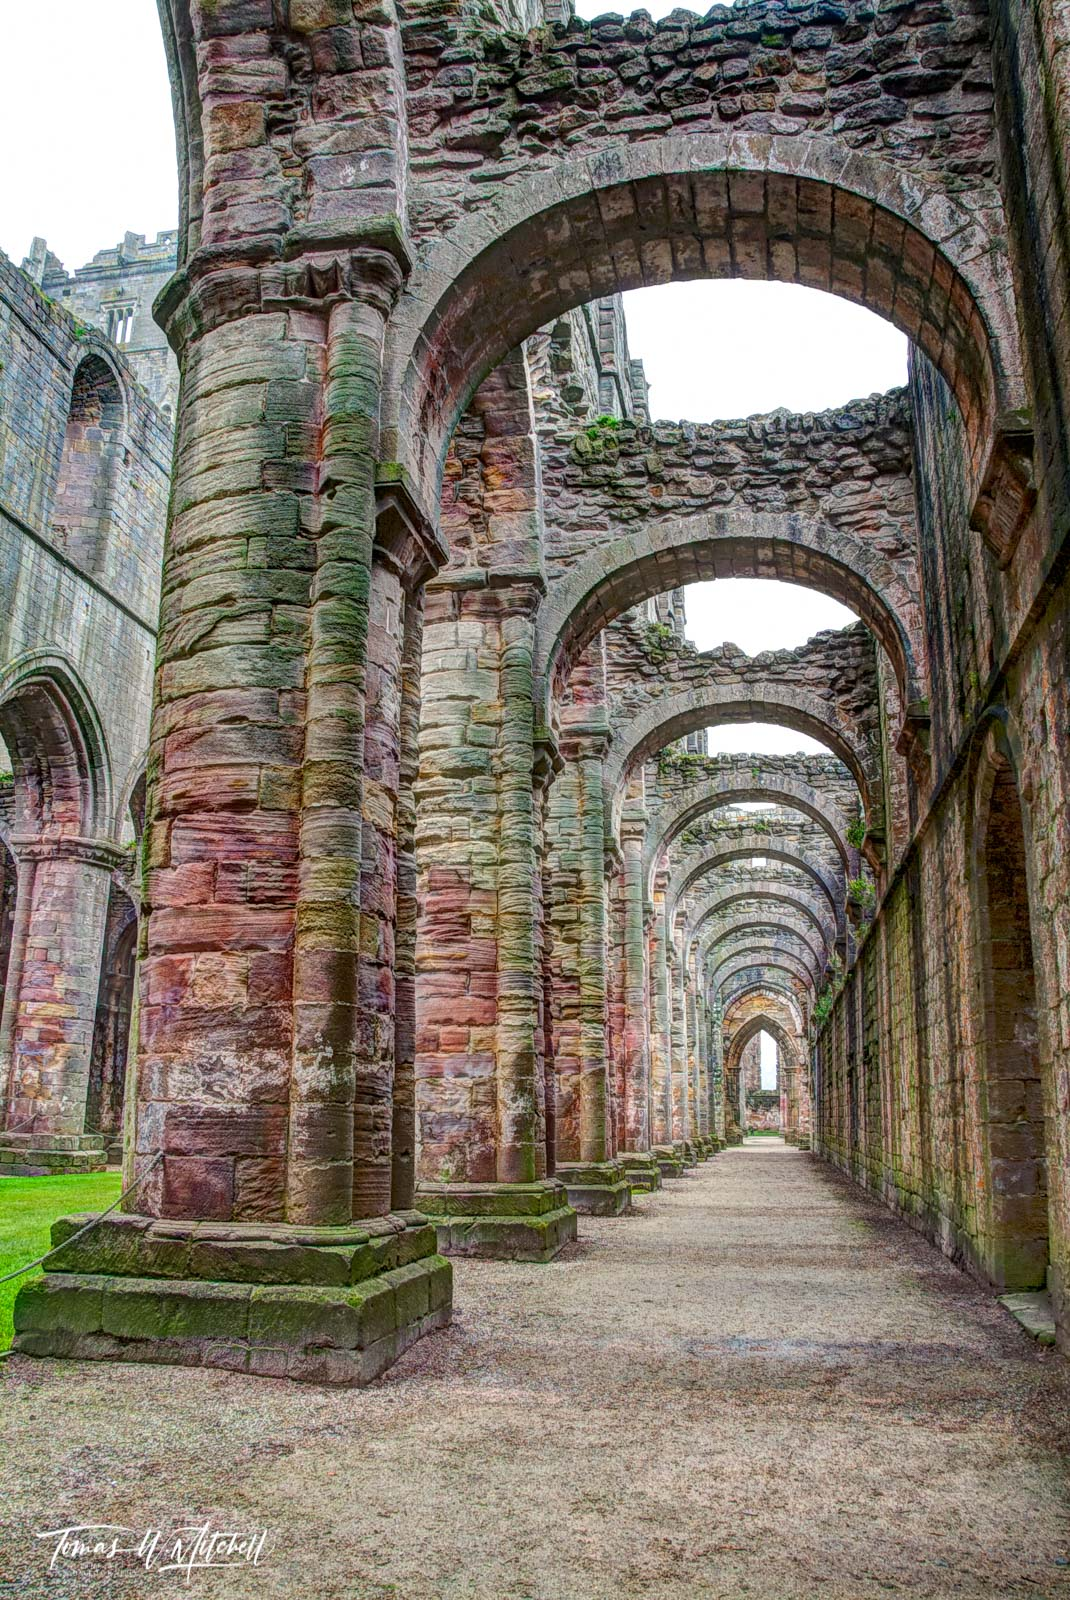 Limited Edition of 100 Museum Grade, Fine Art Prints. I took this photograph looking down the edge of the nave section of the...